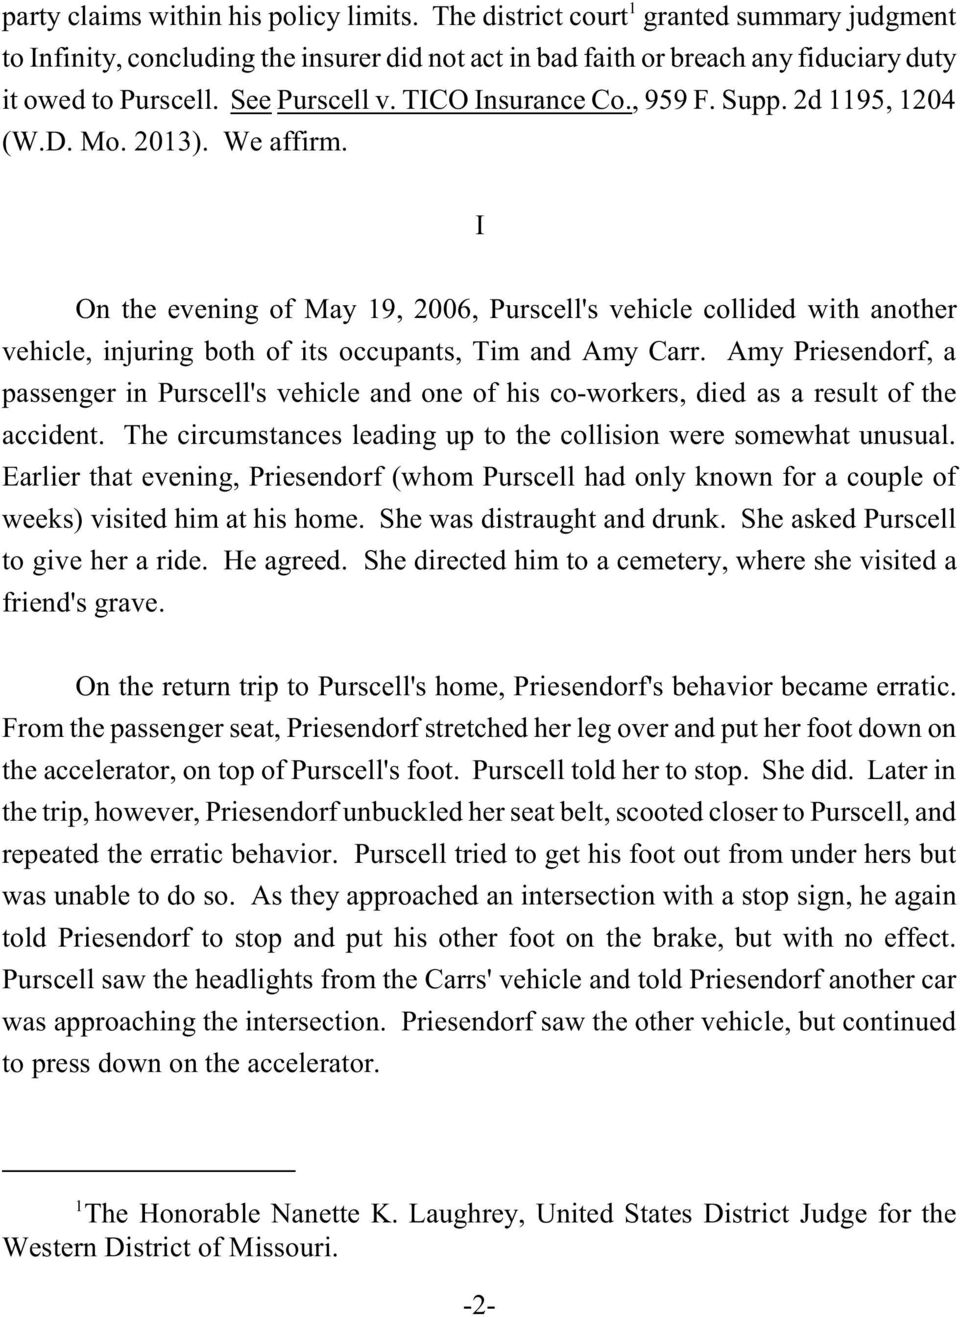 I On the evening of May 19, 2006, Purscell's vehicle collided with another vehicle, injuring both of its occupants, Tim and Amy Carr.